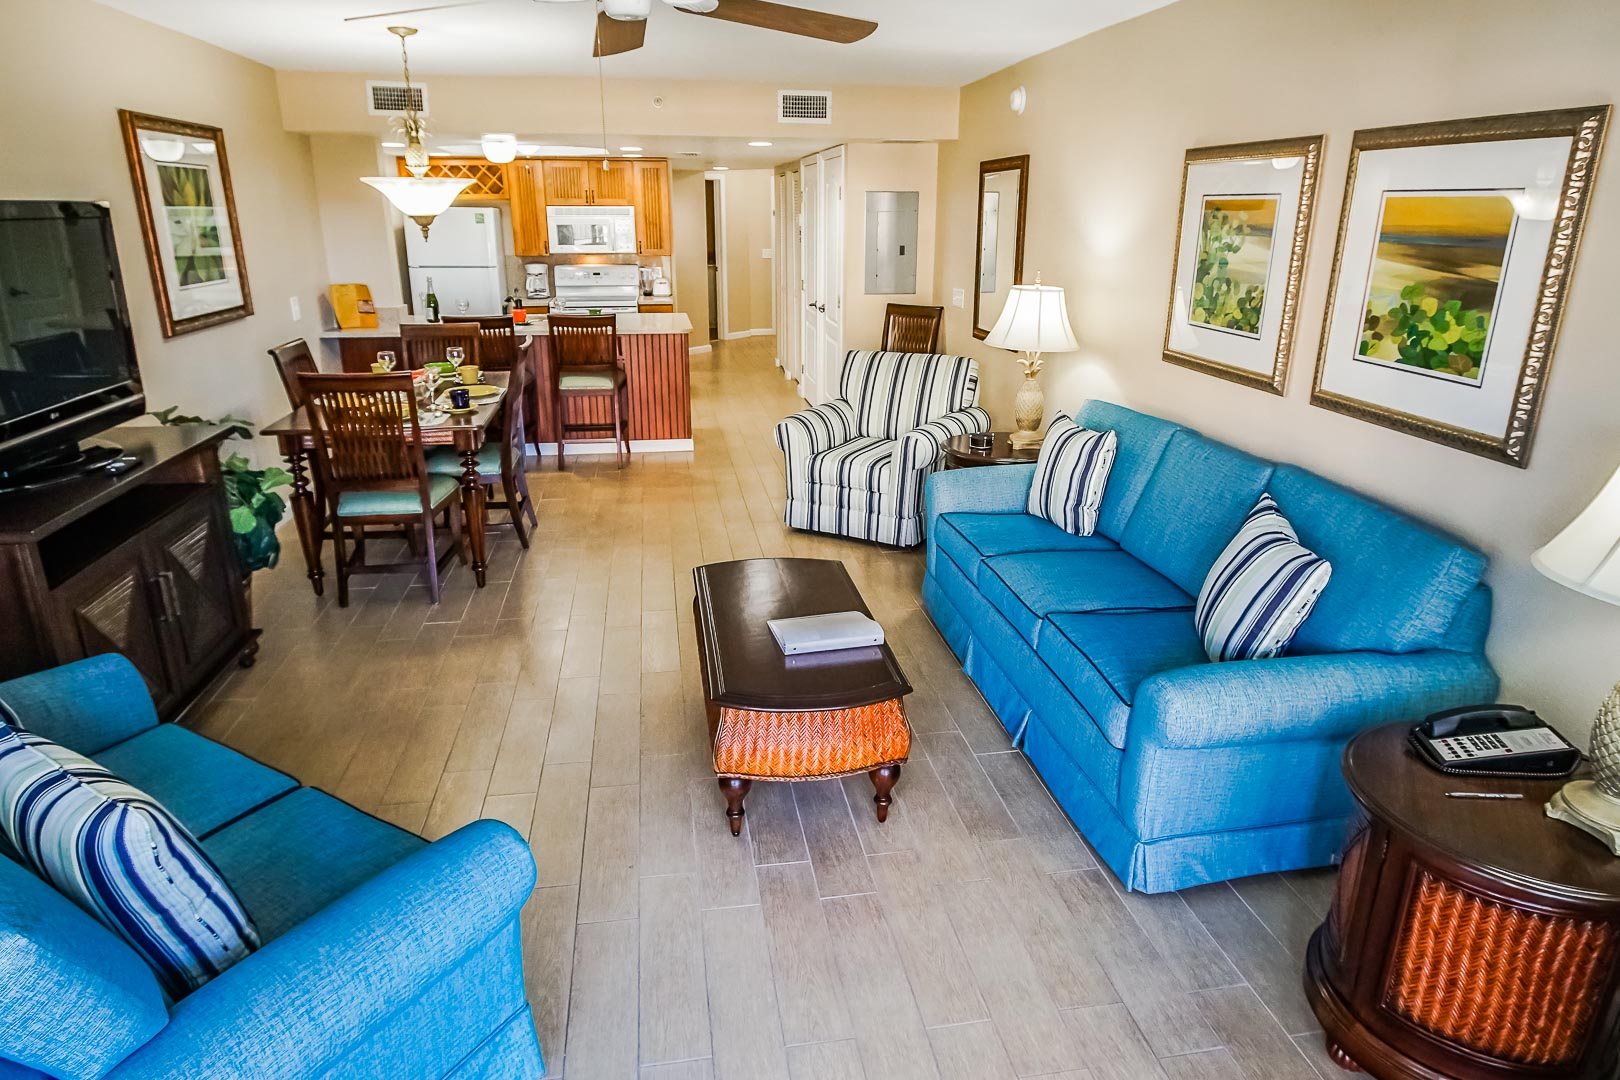 A spacious living room and dining area at VRI's The Resort on Cocoa Beach in Florida.